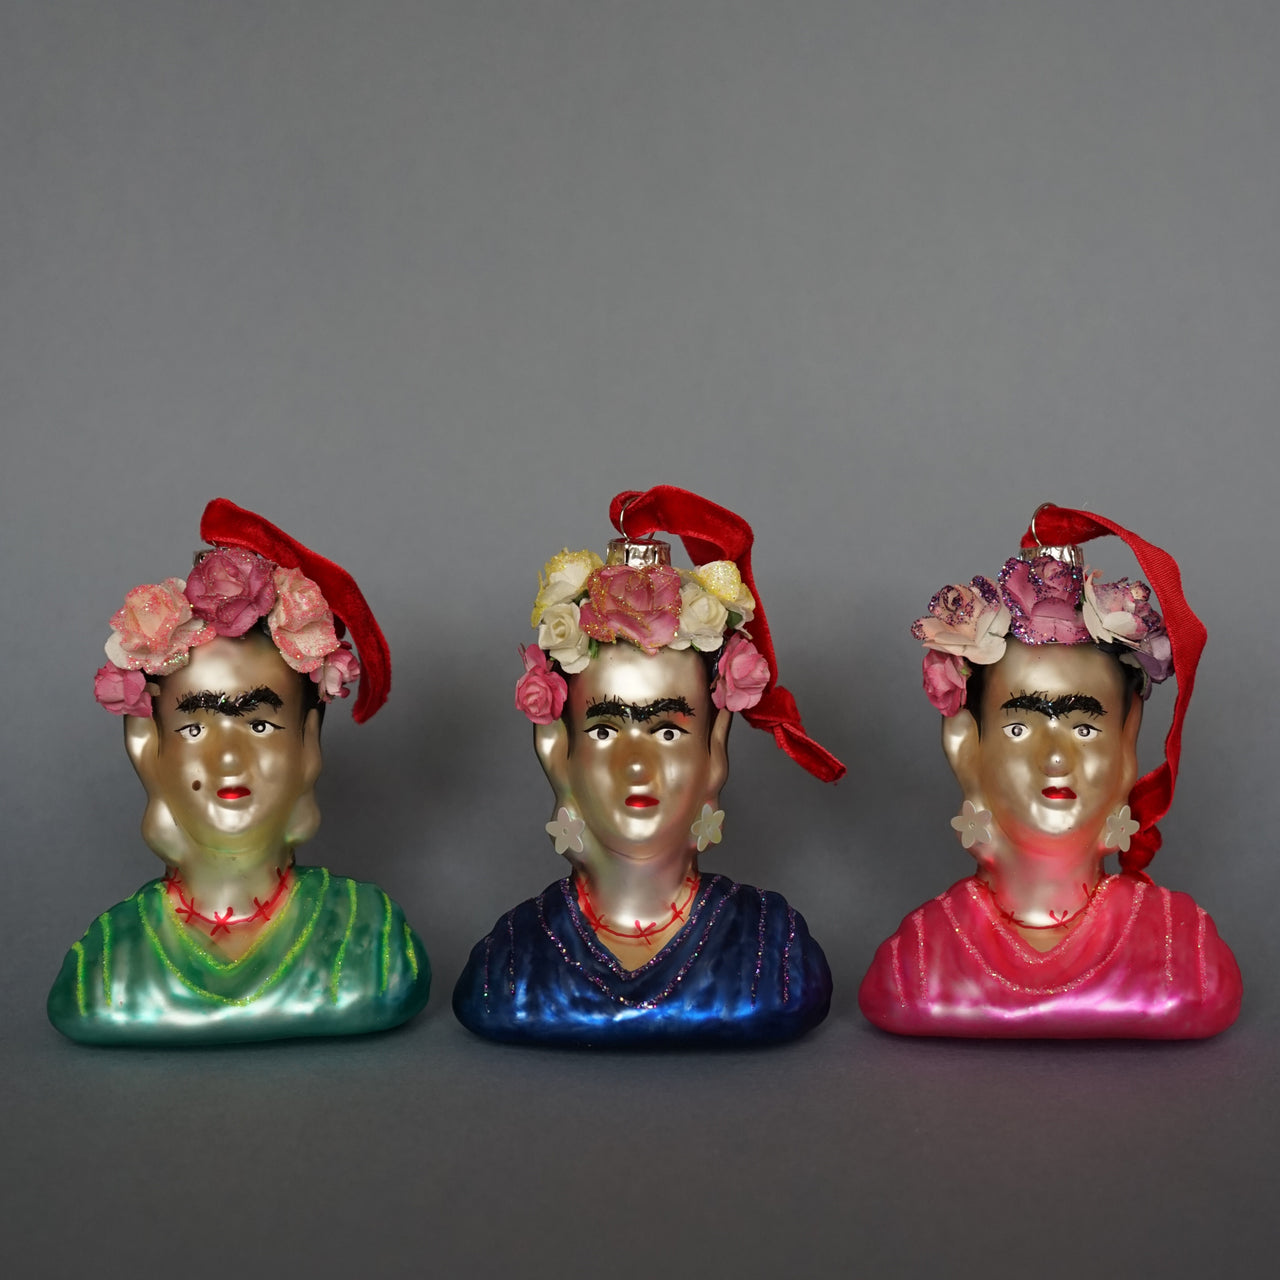 Frida Kahlo Glass Decorations